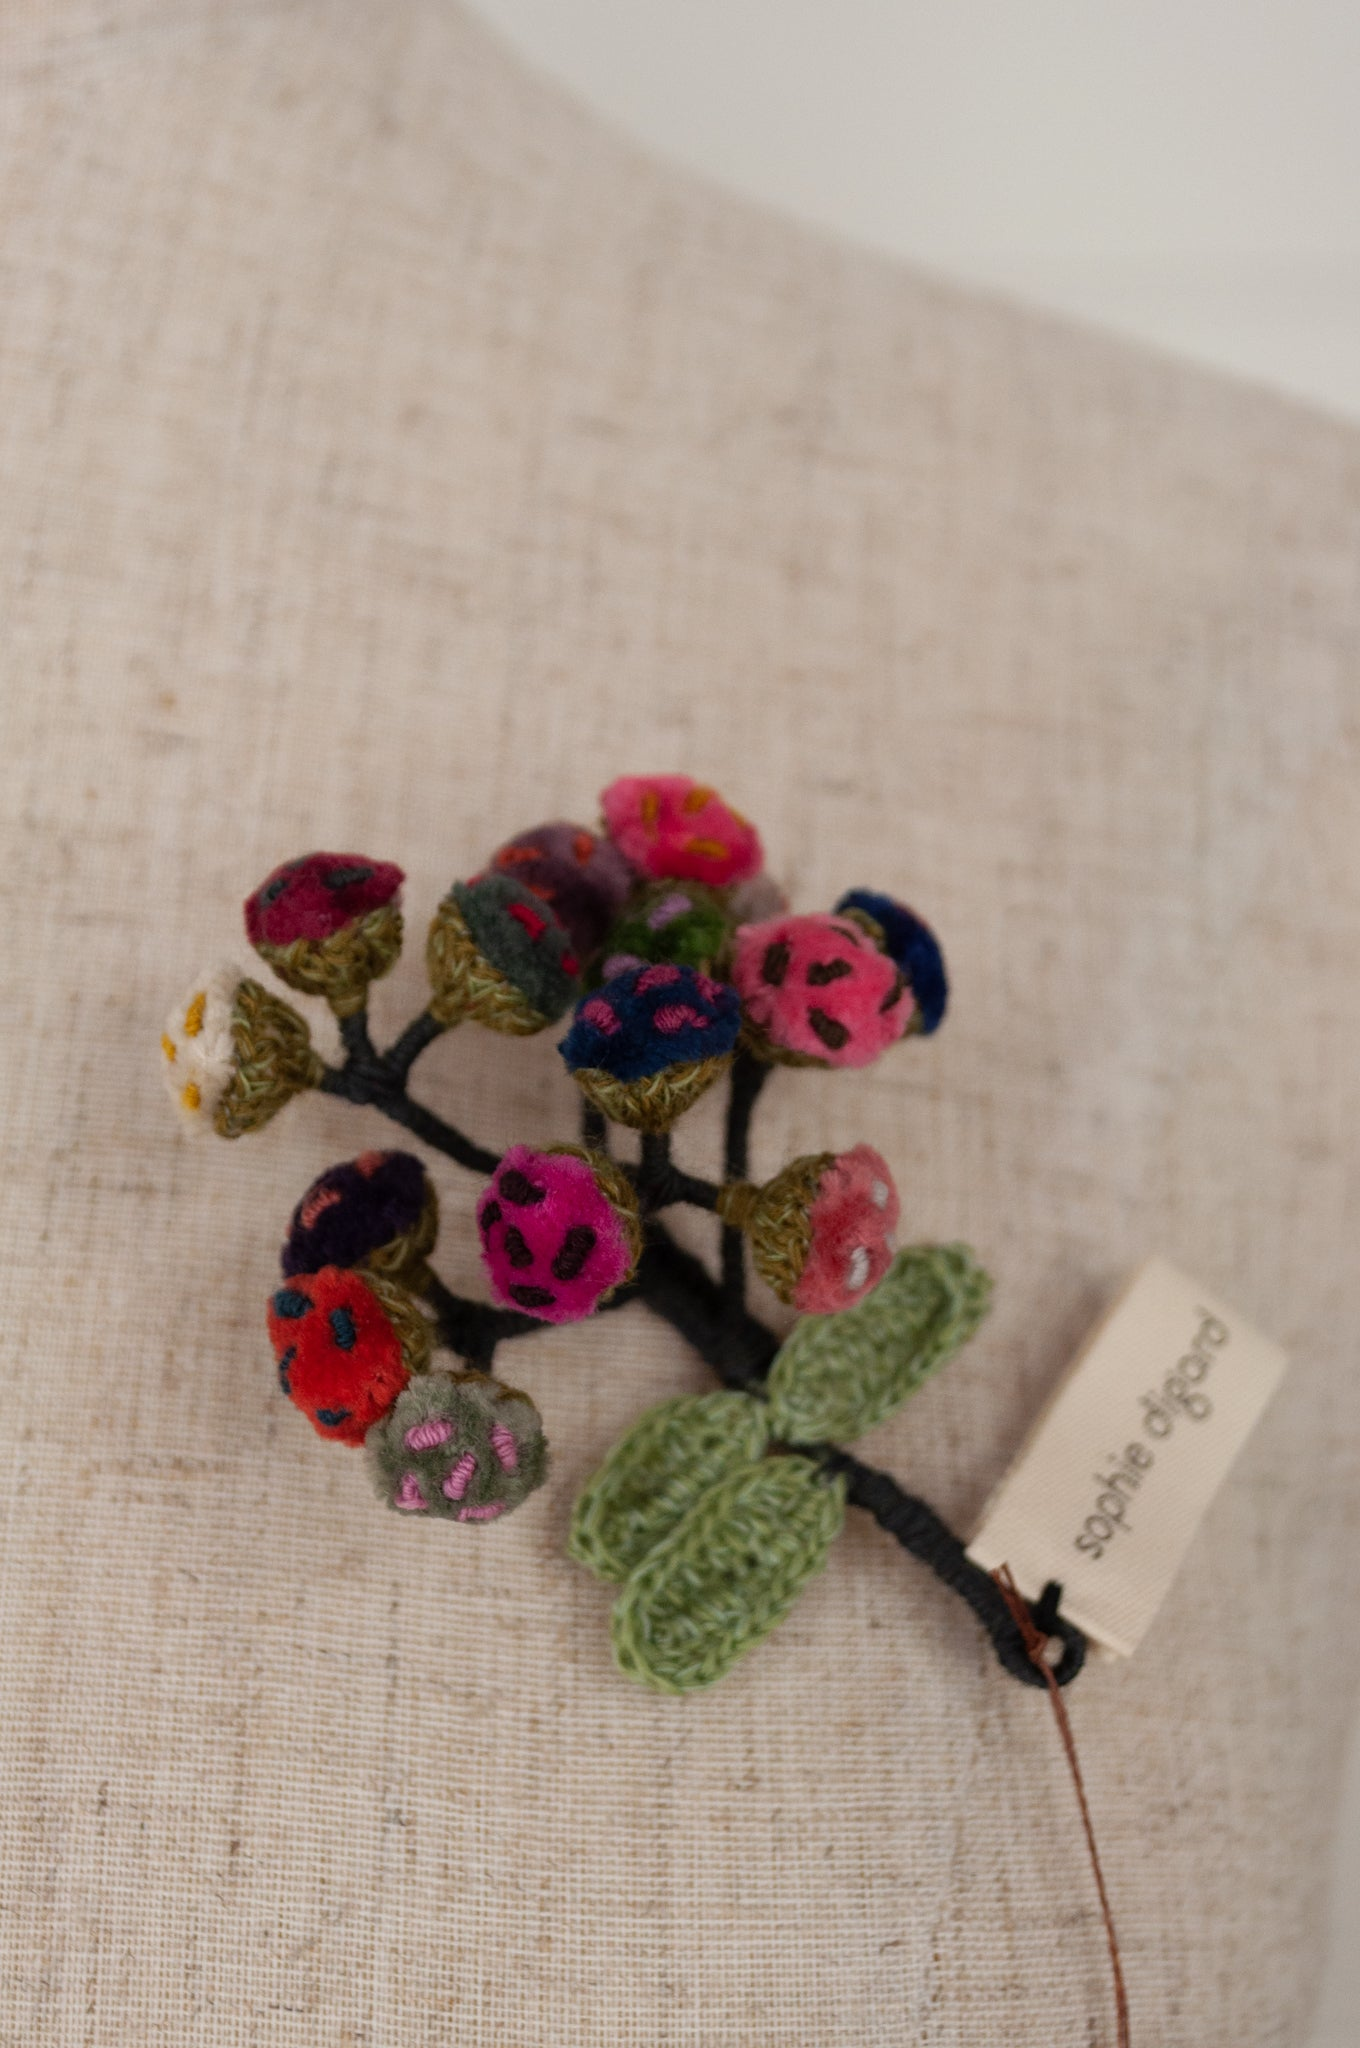 Sophie Digard Immortelle velvet brooch in bright wintery tones of pink, red, blue and green.